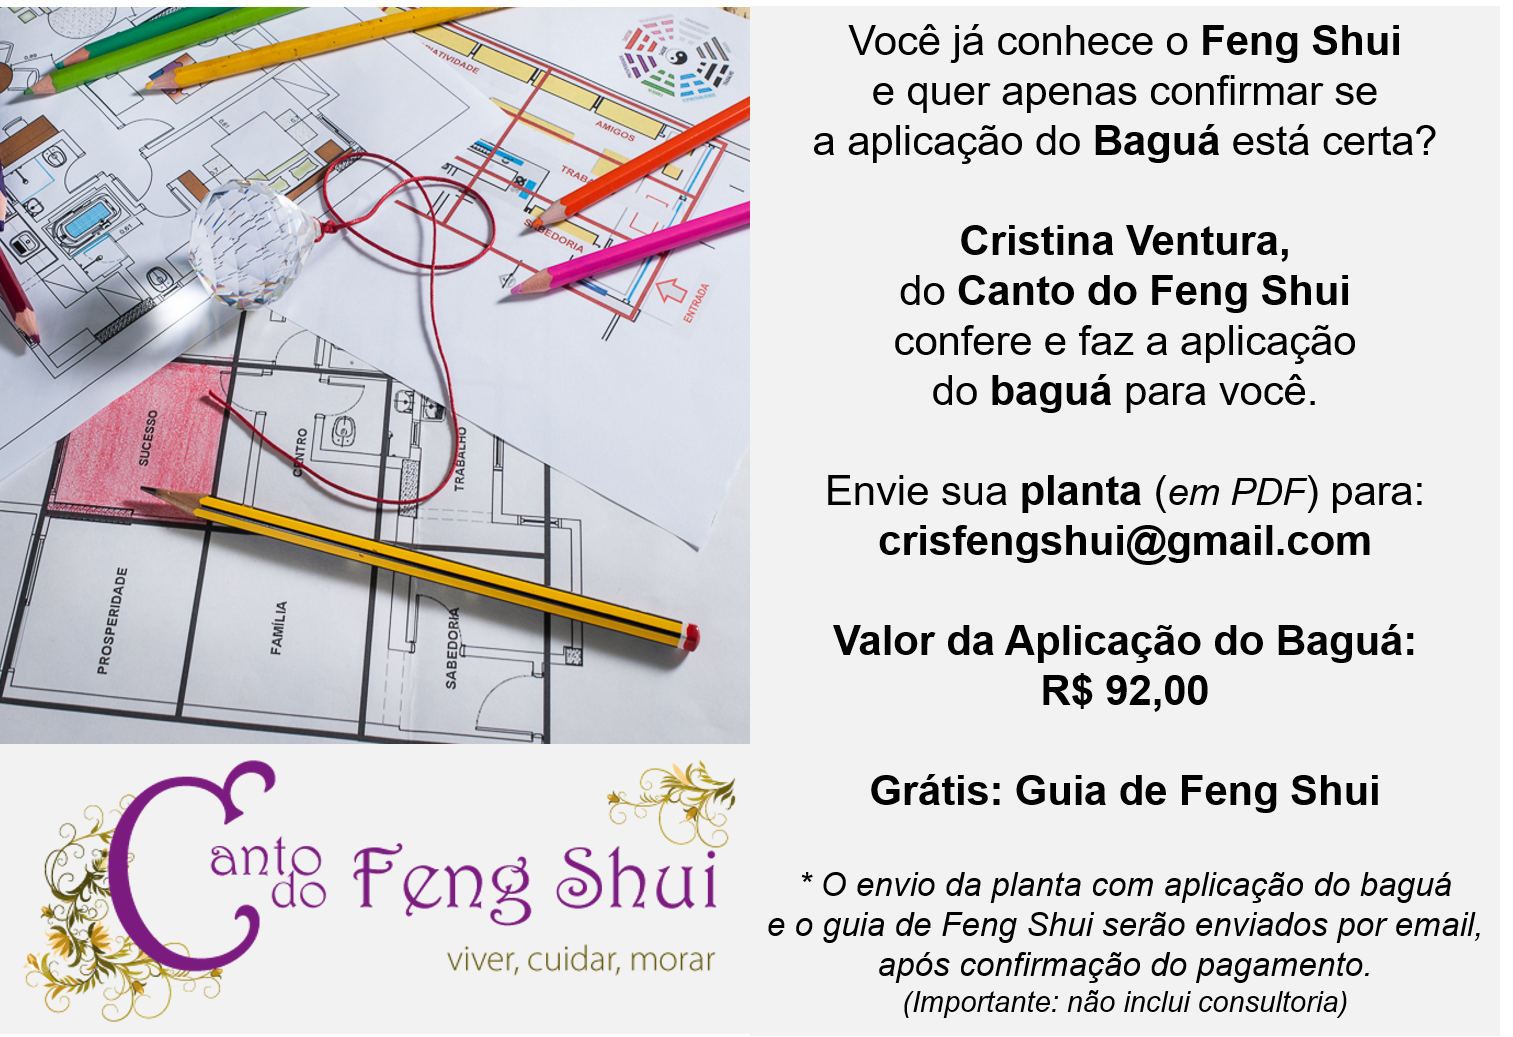 Canto do Feng Shui #BE890D 1513 1037